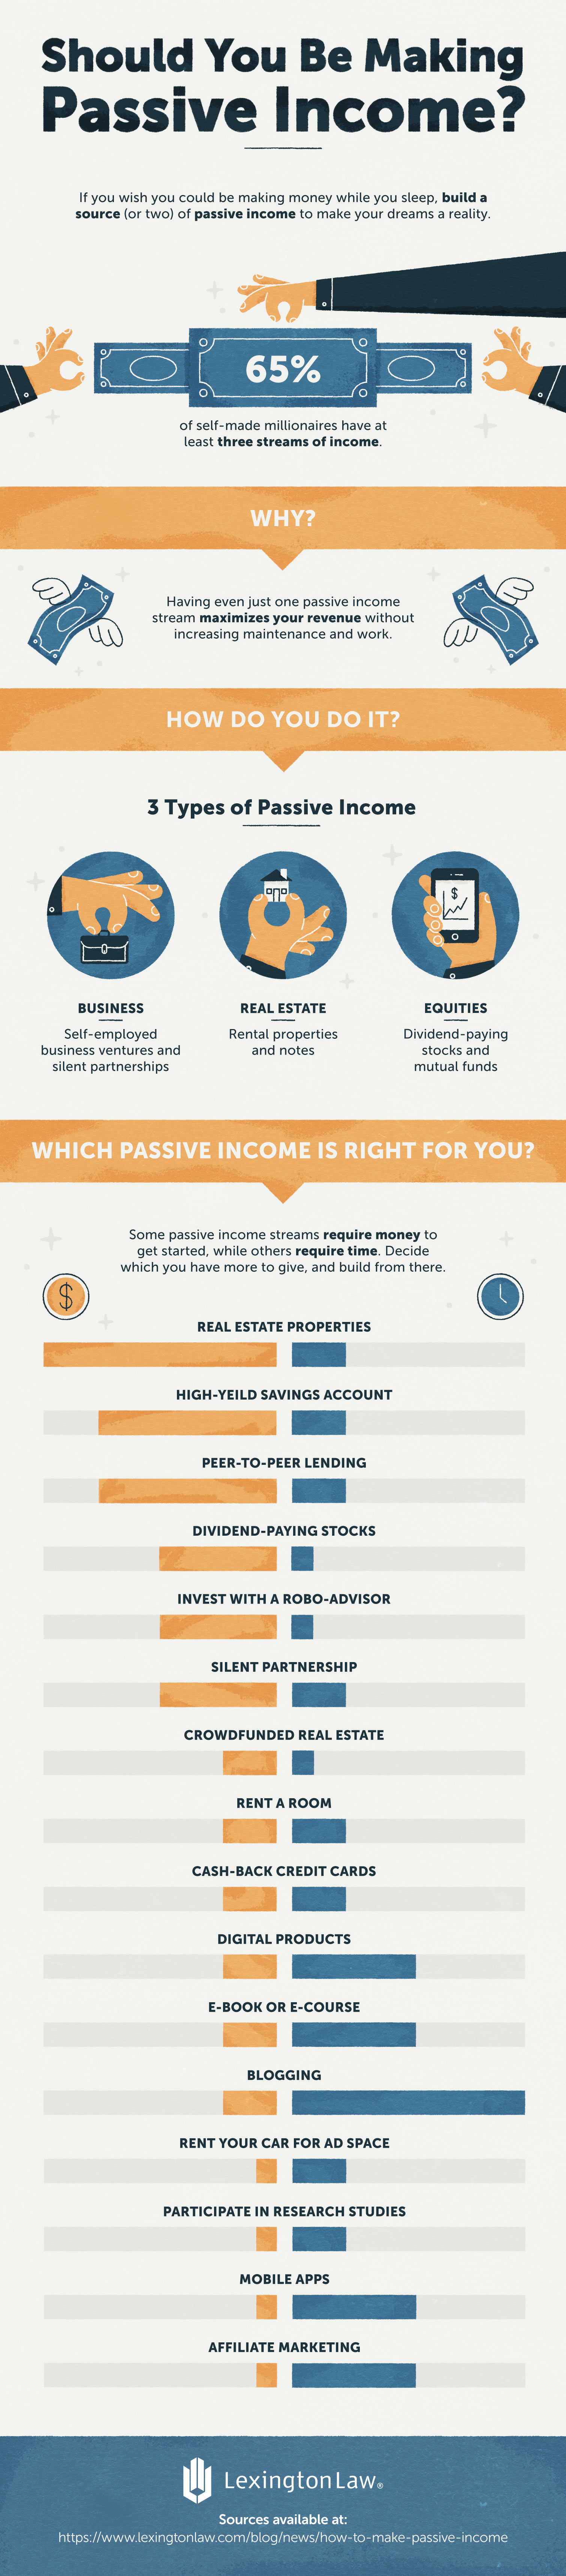 should-you-be-making-passive-income